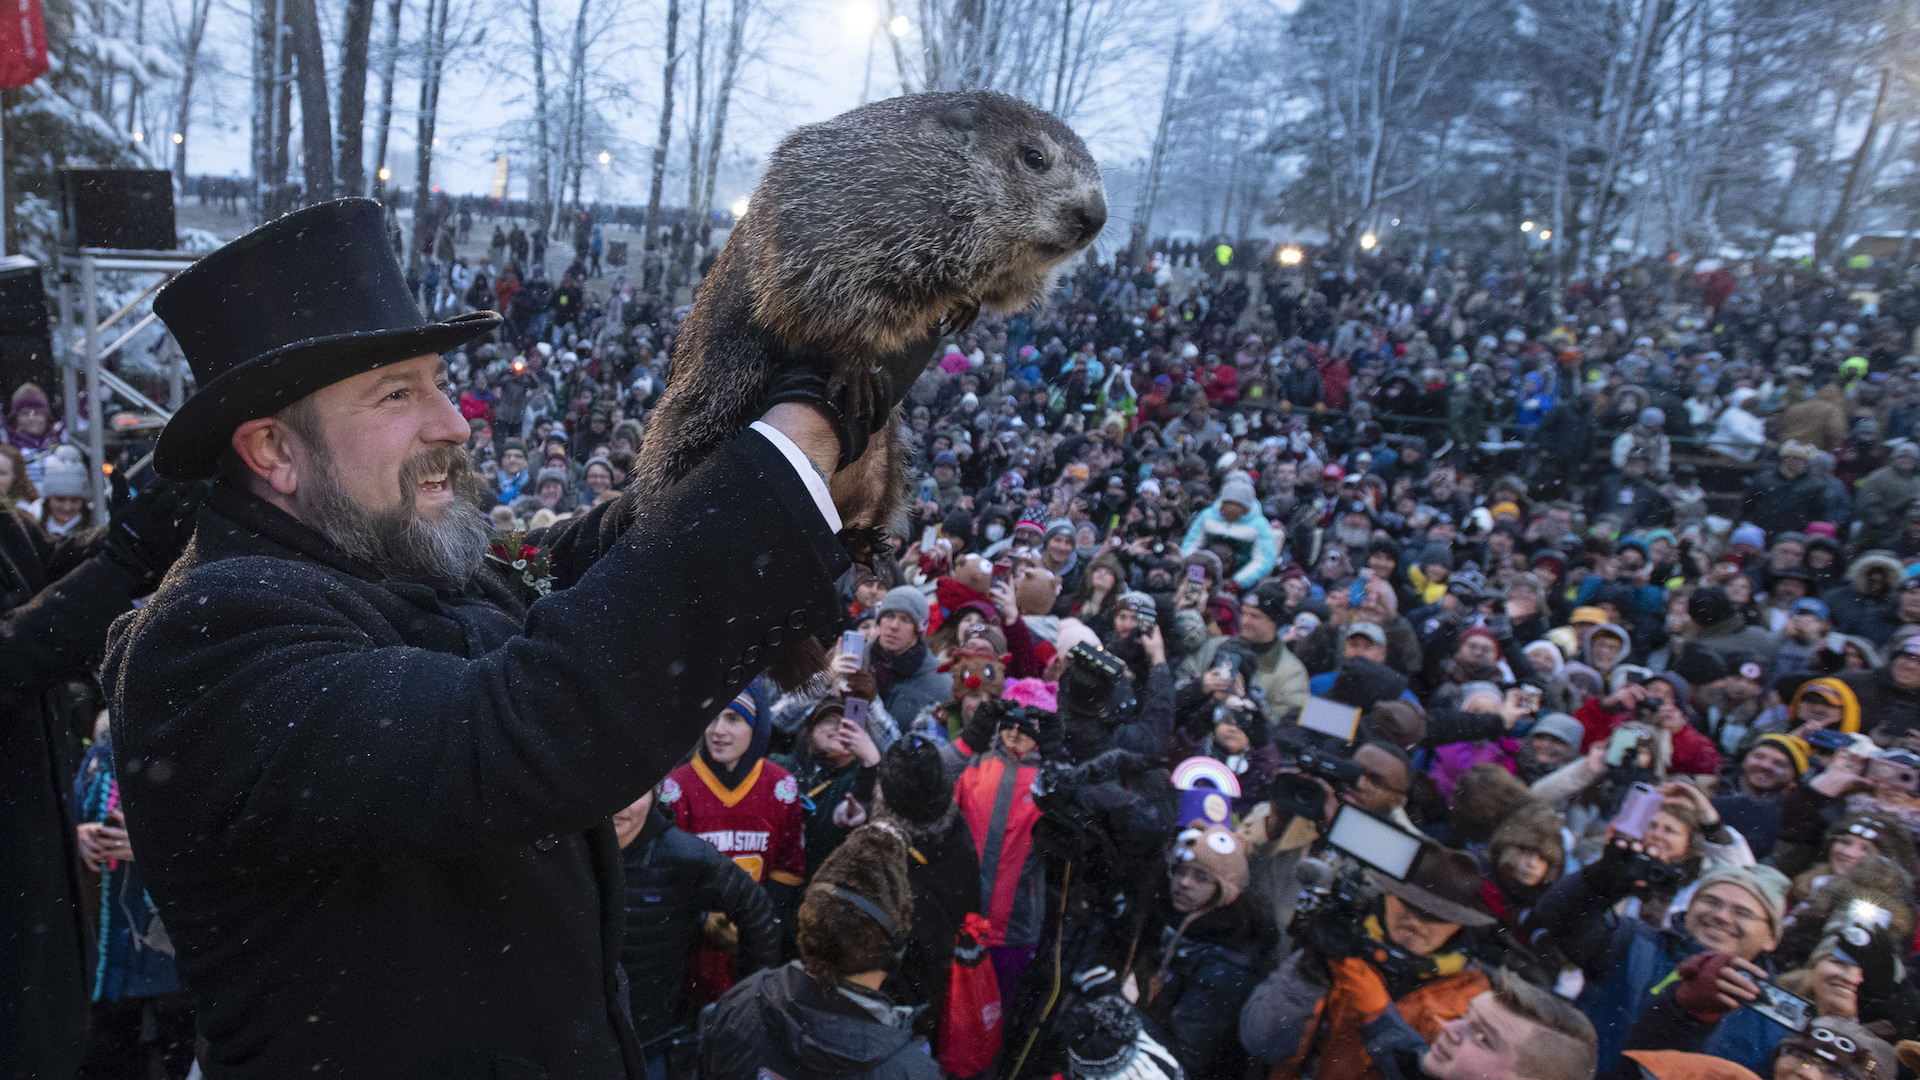 ​Groundhog's Day 2020: Spring will come early this year